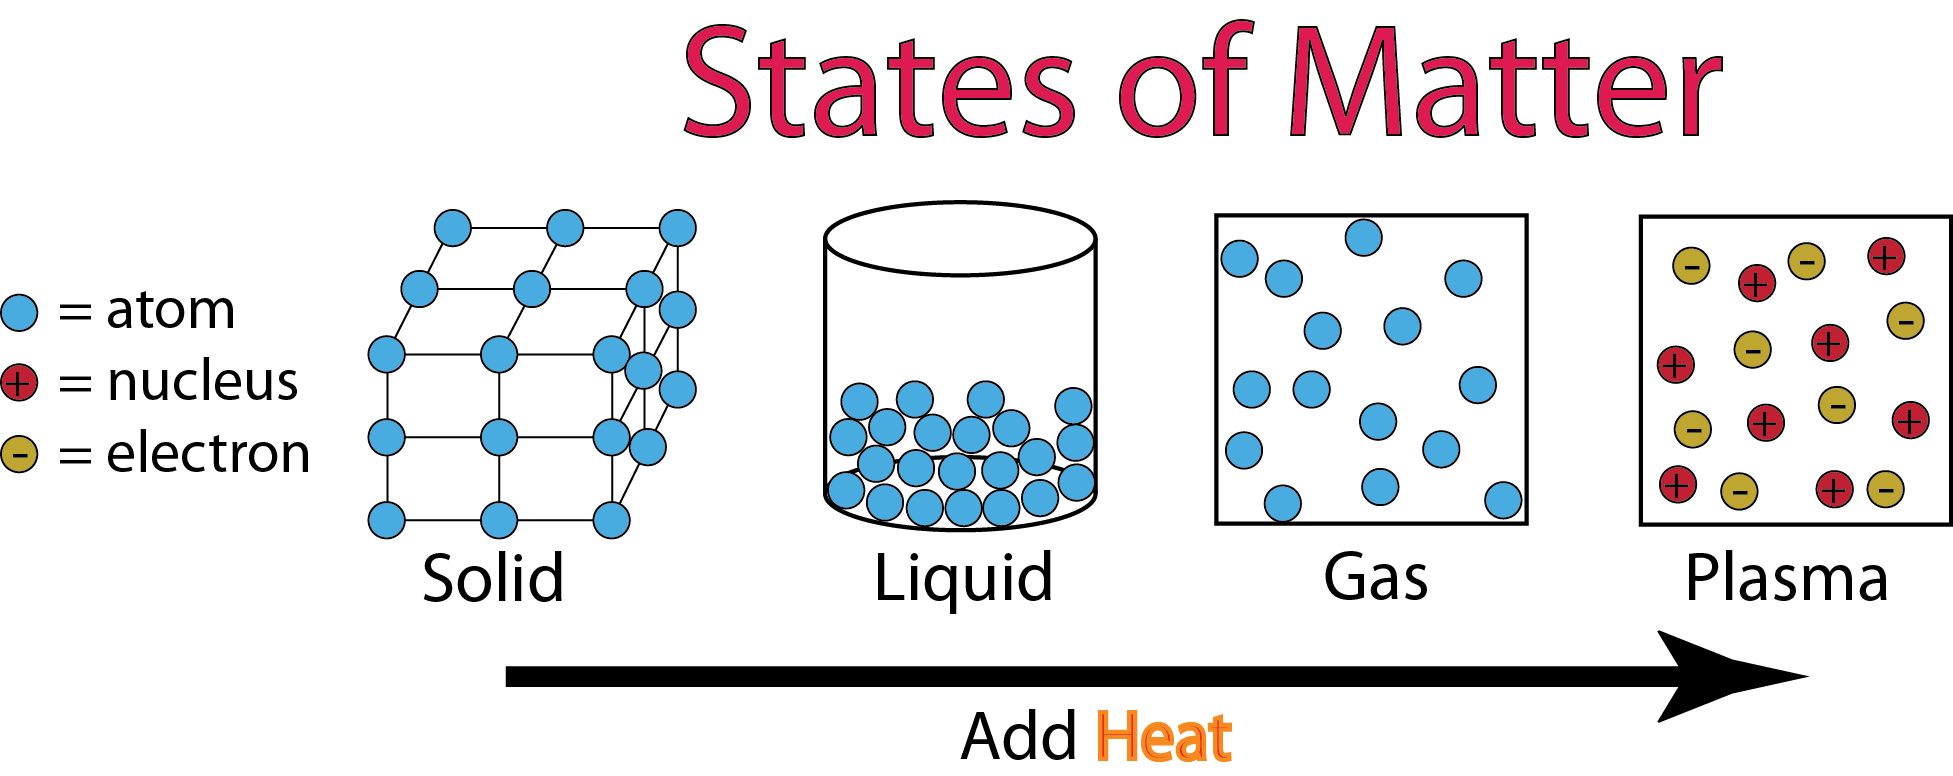 Forms Of Matter >> States Of Matter Amazing Science Wiki Fandom Powered By Wikia